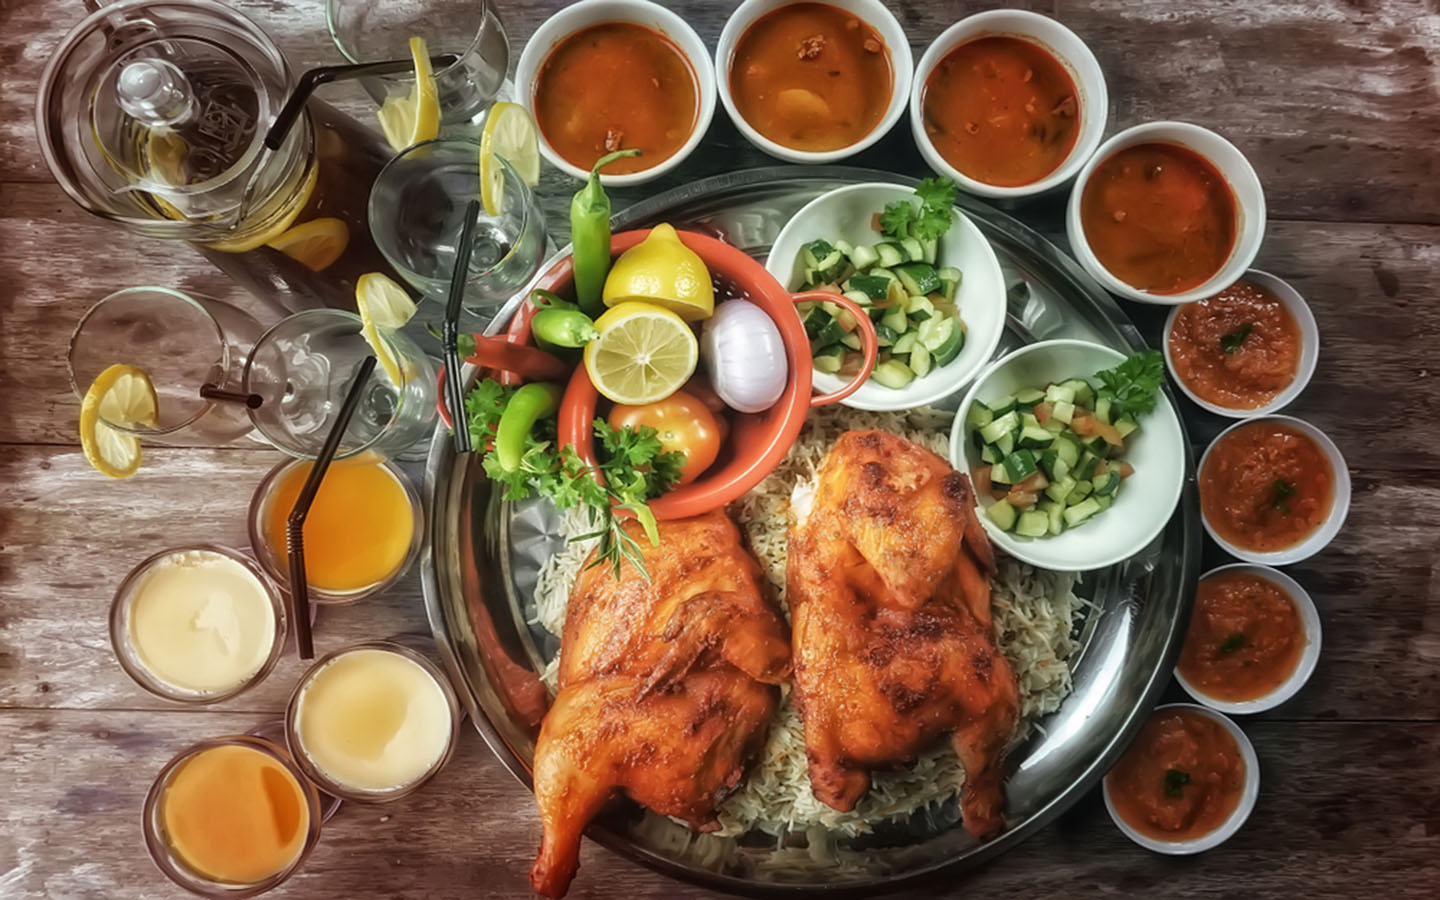 Chicken Mandi with assorted sauces